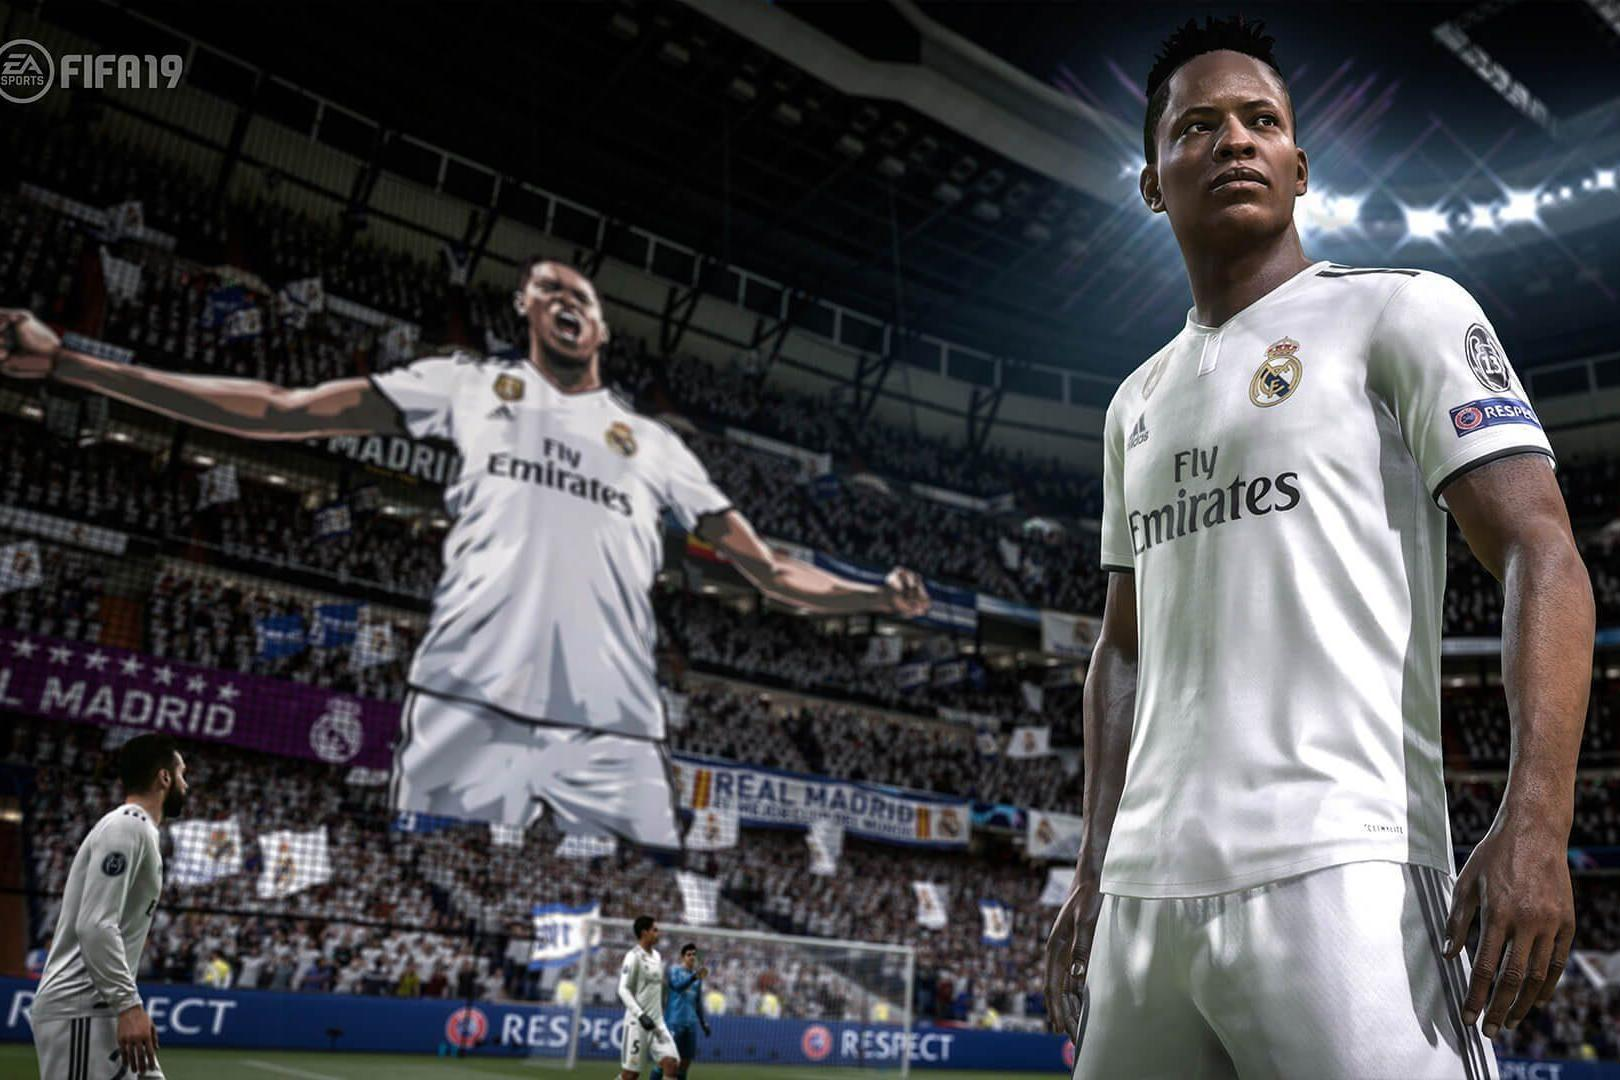 Alex Hunter returns in FIFA 19